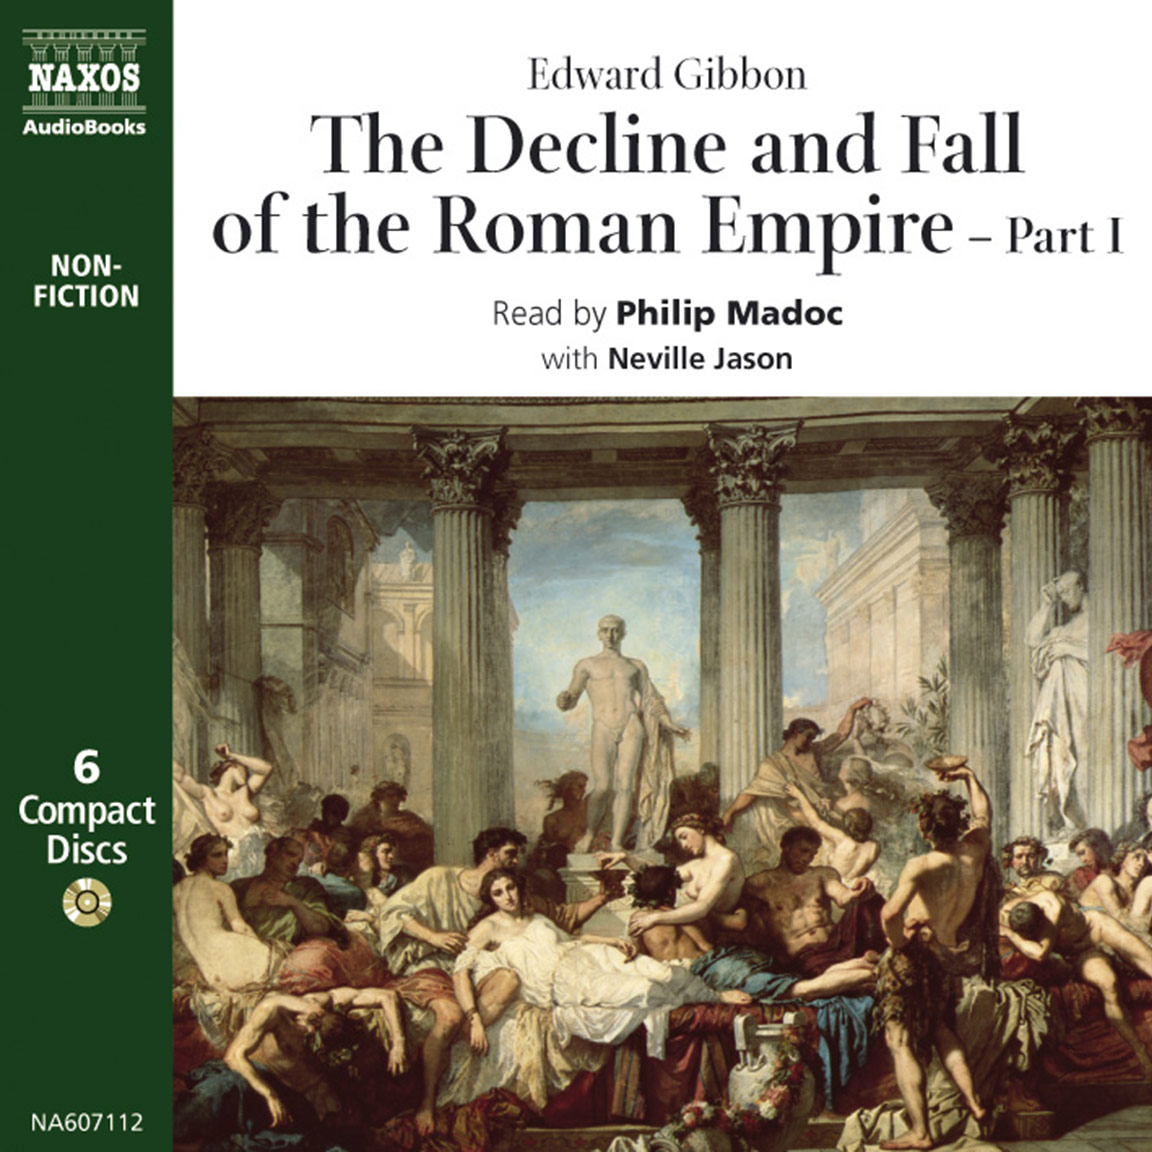 decline fall of the r empire part 1 the abridged decline fall of the r empire part 1 the abridged naxos audiobooks